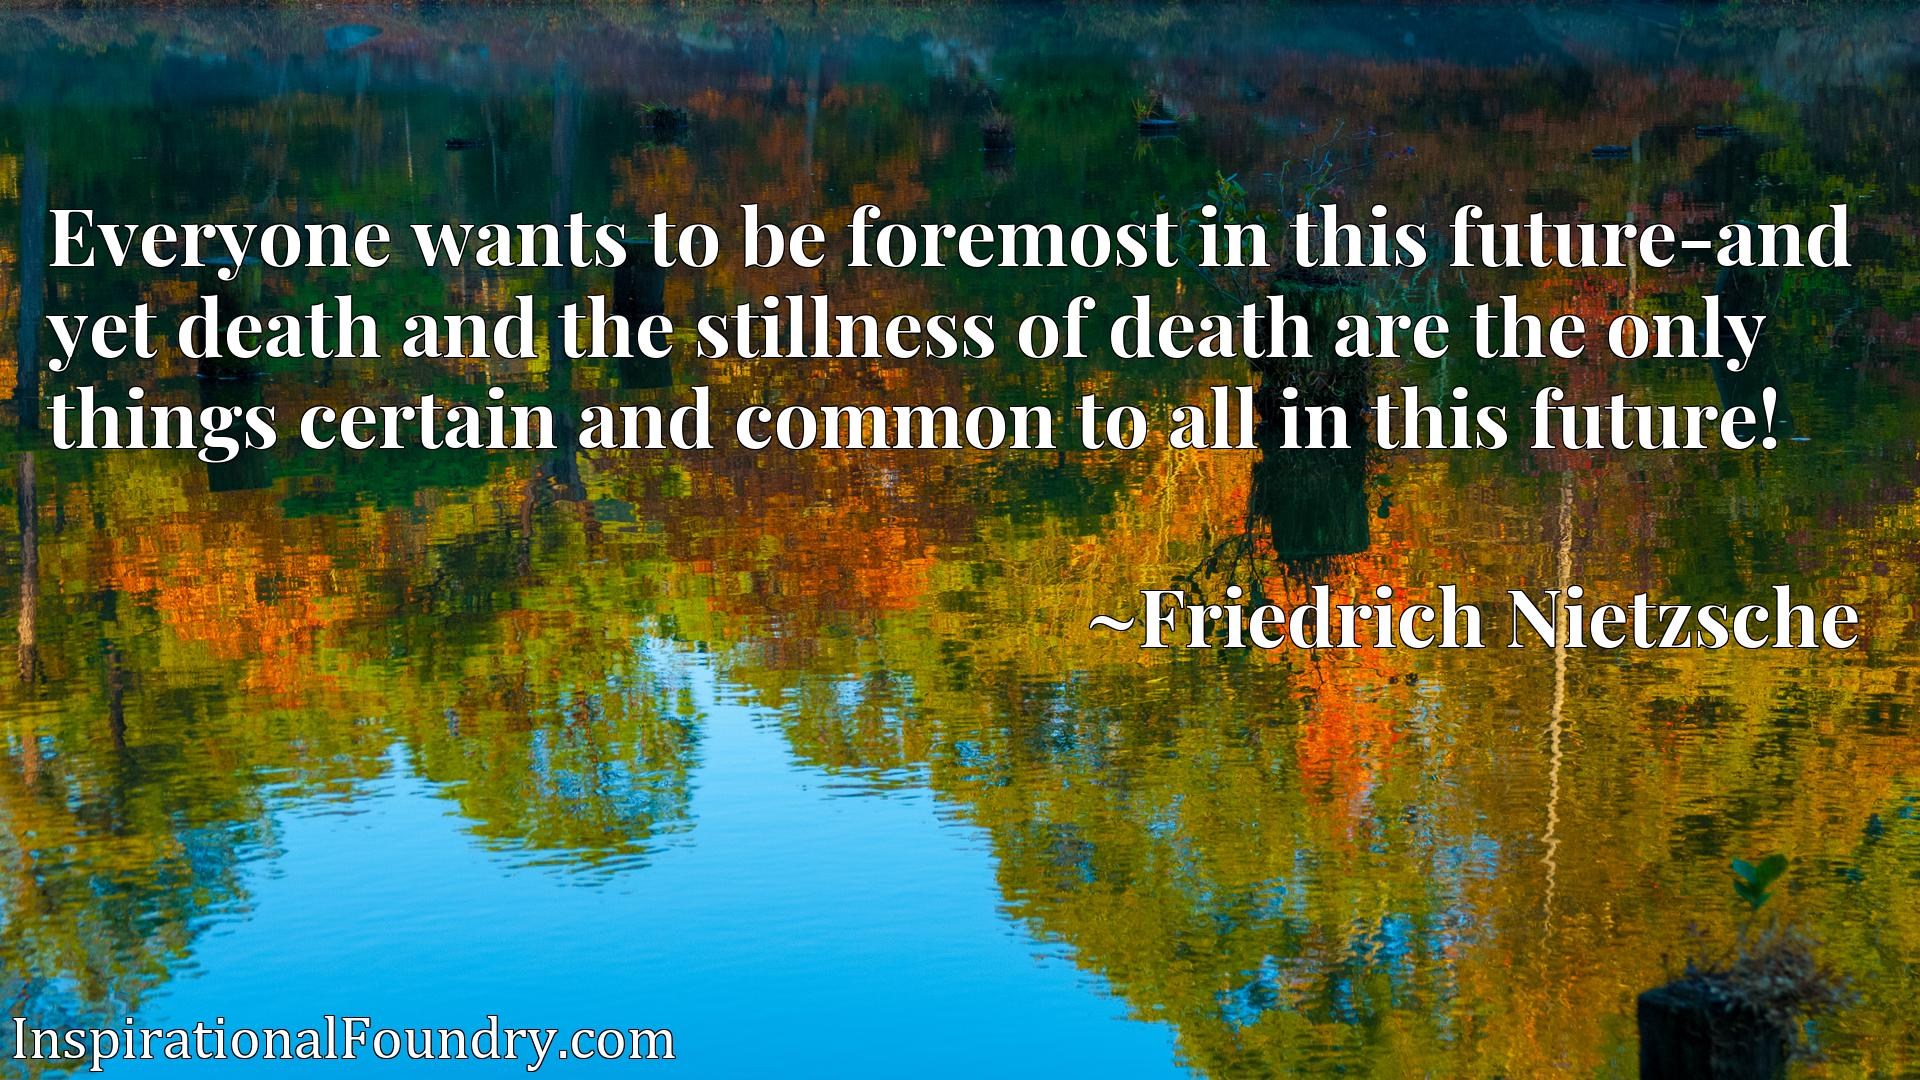 Everyone wants to be foremost in this future-and yet death and the stillness of death are the only things certain and common to all in this future!